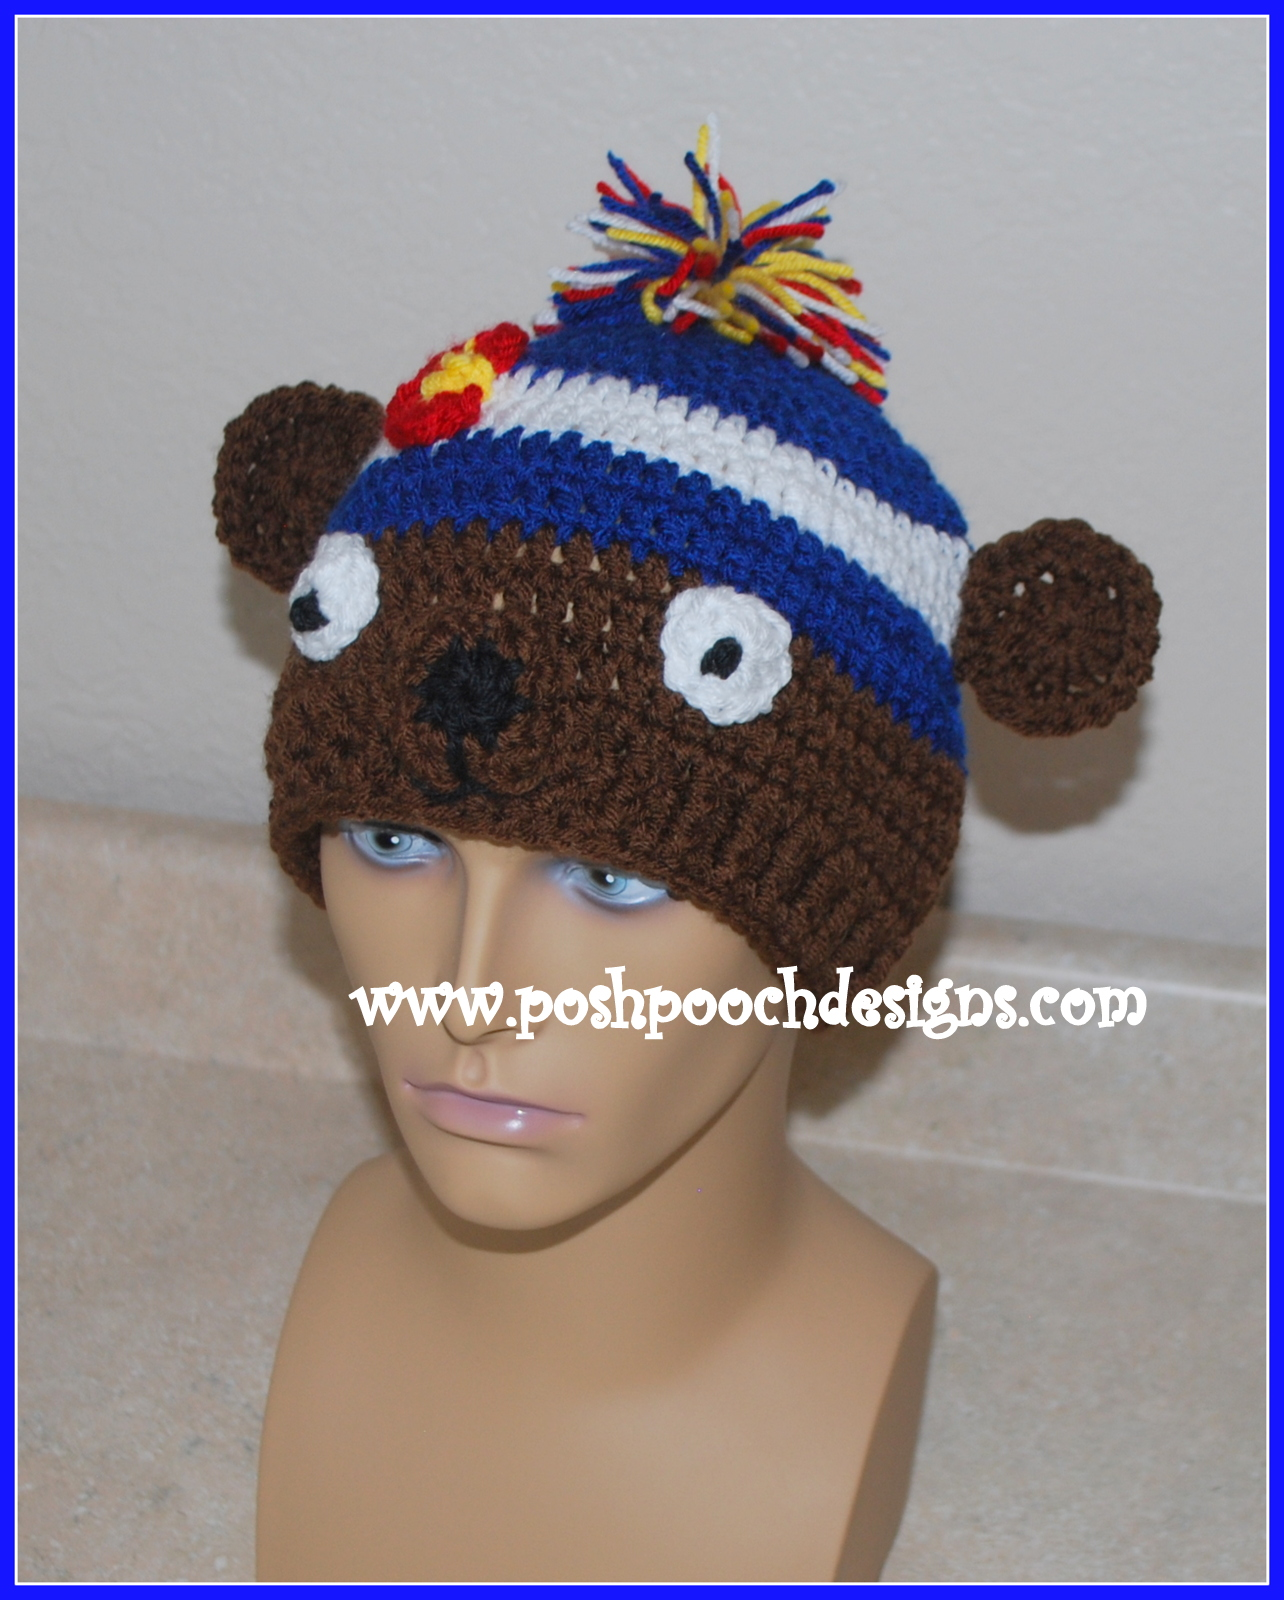 Posh Pooch Designs Dog Clothes: Bear Colorado Beanie Hat ...